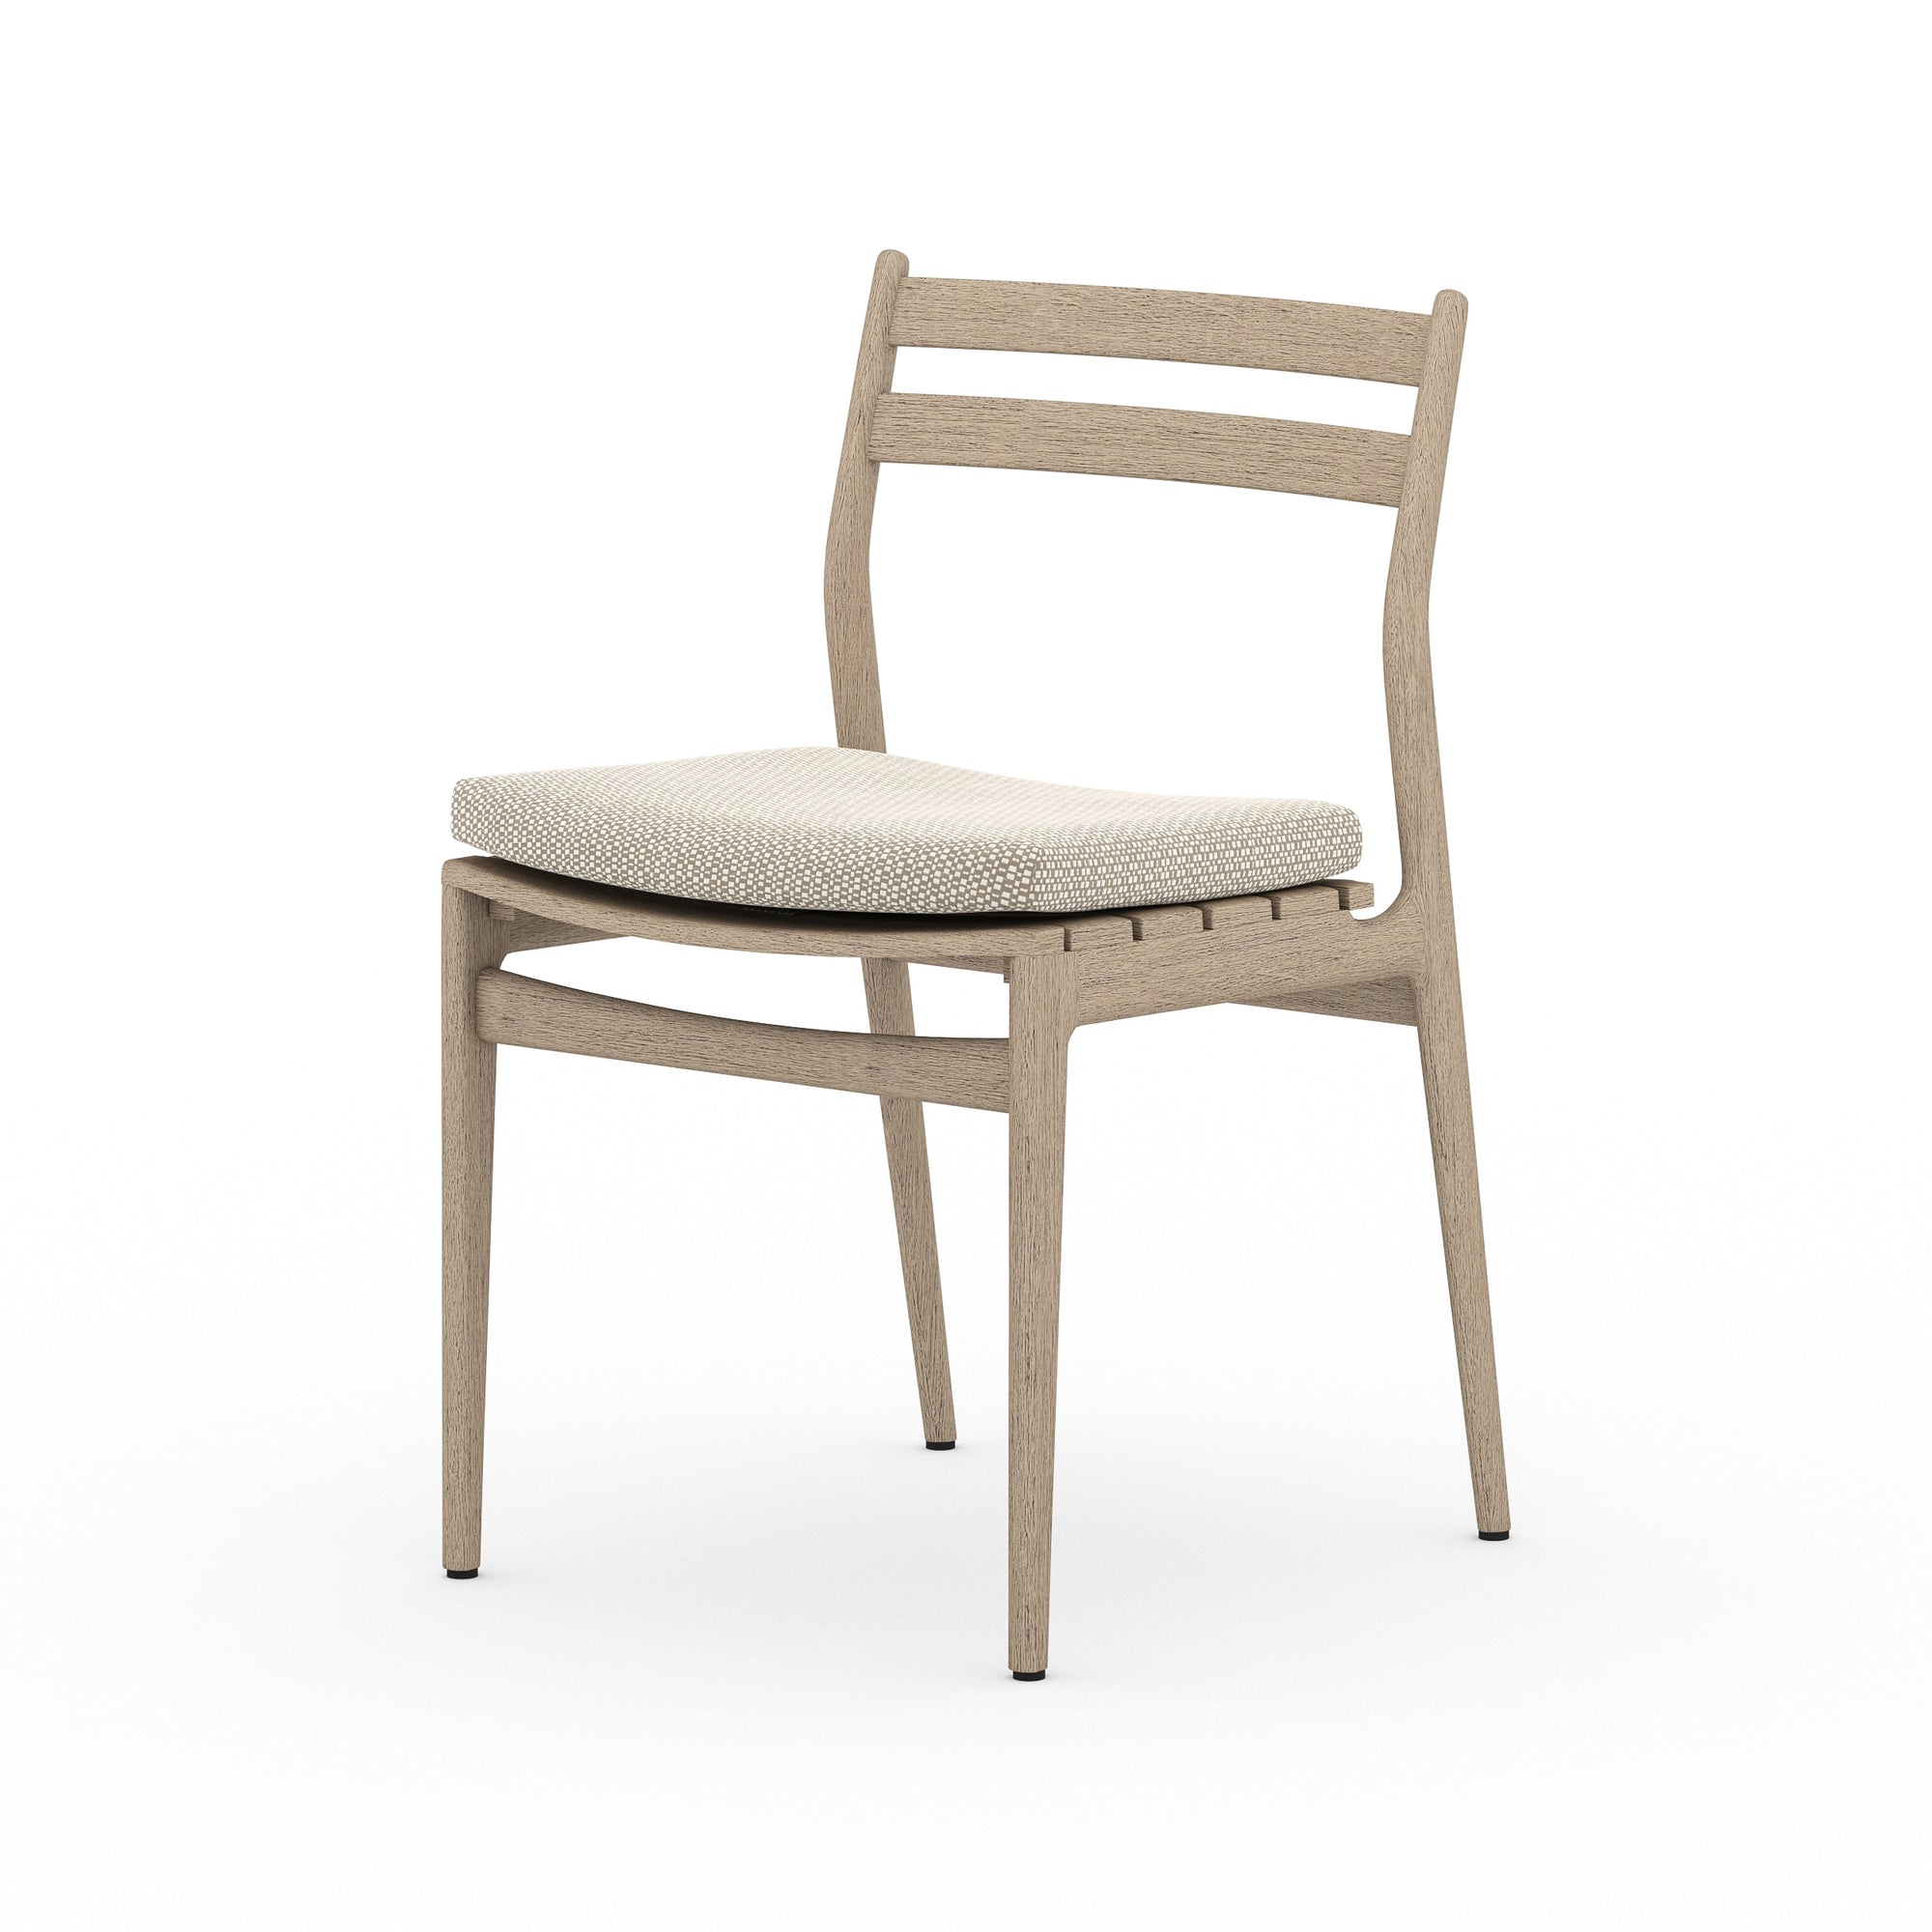 Atherton Outdoor Dining Chair - Brown/Sand